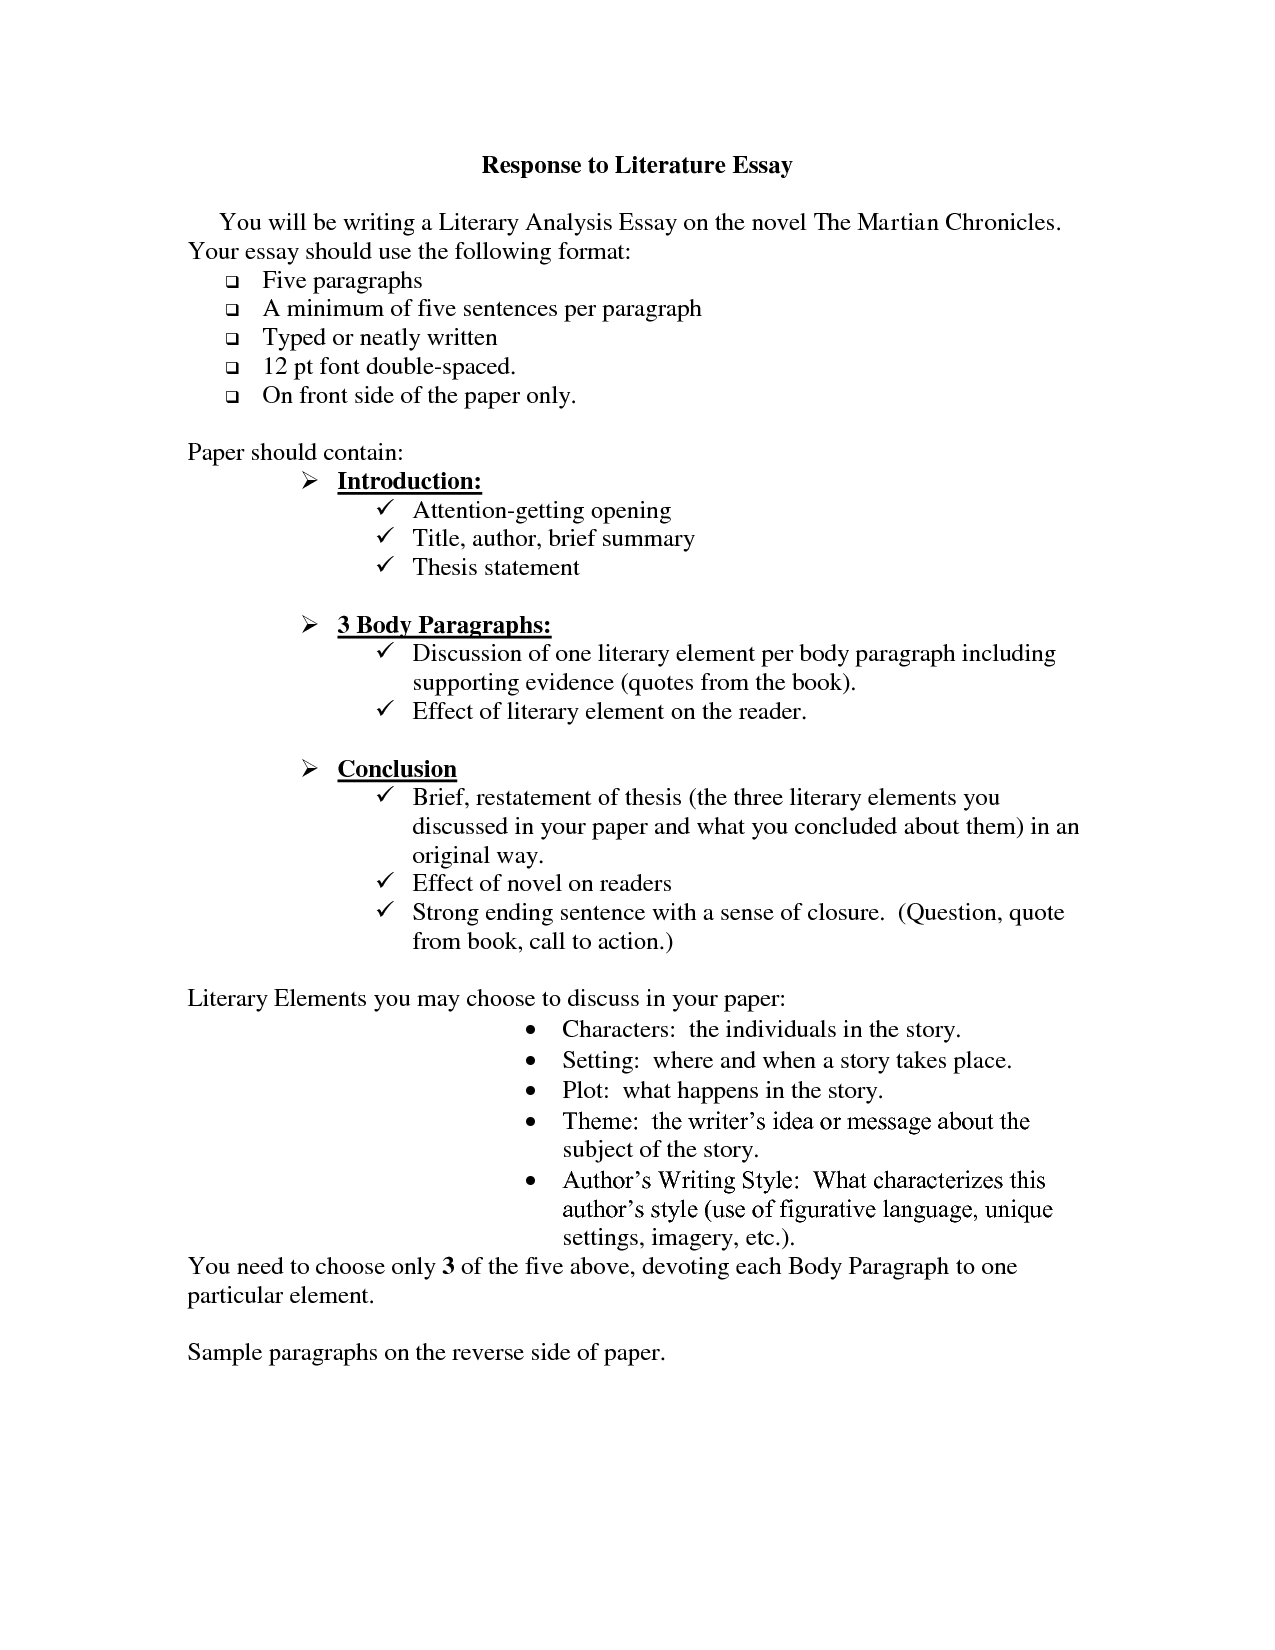 027 Write Critical Analysis Essay Response Literature Character Sketch Macbeth Introduction College Poetry Example Rhetorical Process Examples Analytical Research Paper Literary Paragraph Amazing Reader On The Story Of An Hour Definition Full